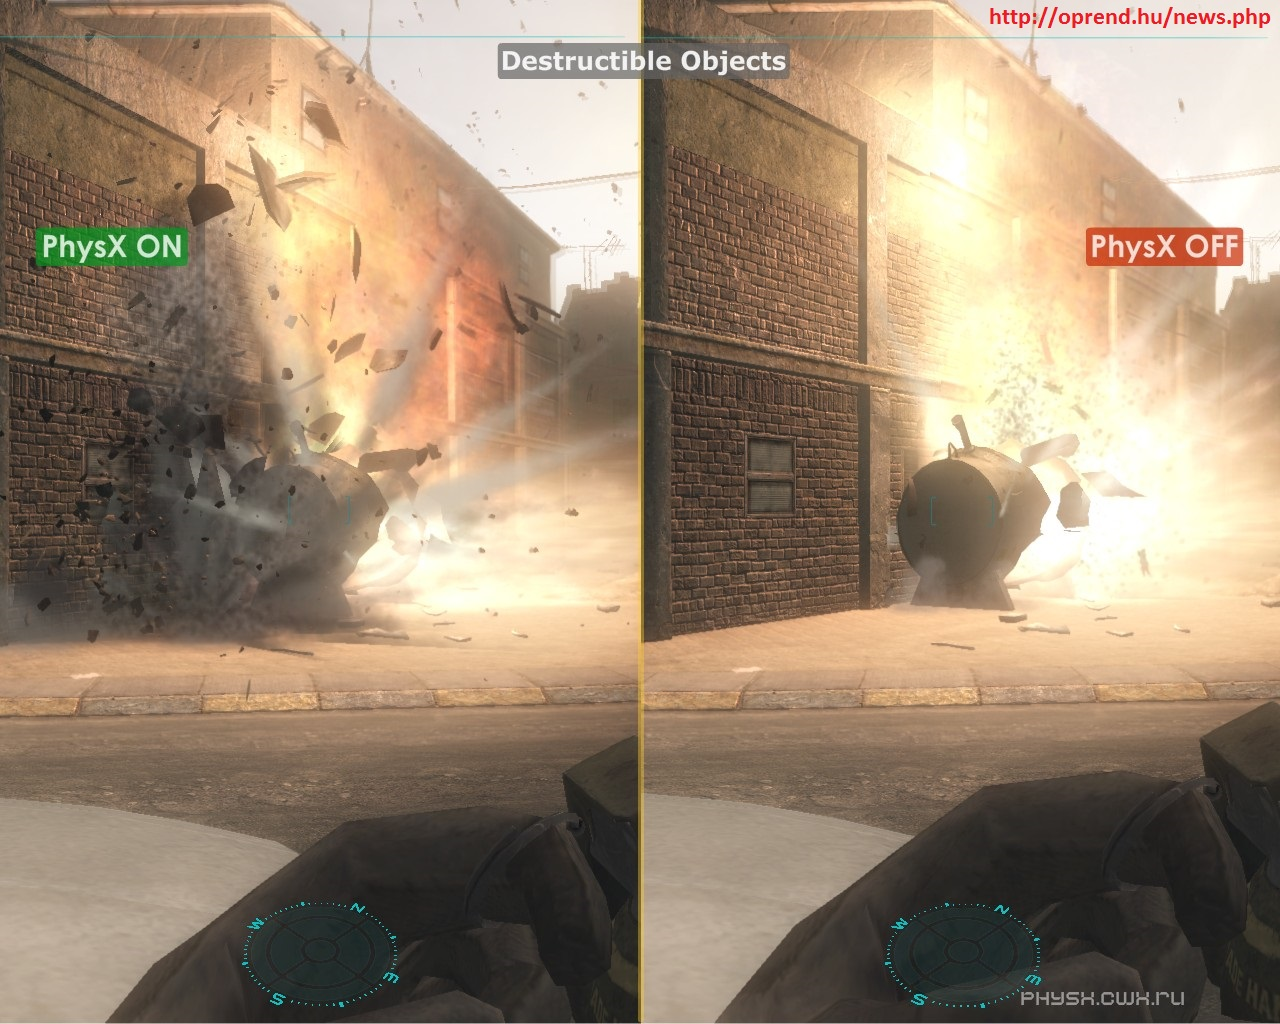 oprend.hu/infusions/downloads/images/screenshots/physx_in_ghost_recon_advanced_warfighter_2-kp2.jpg